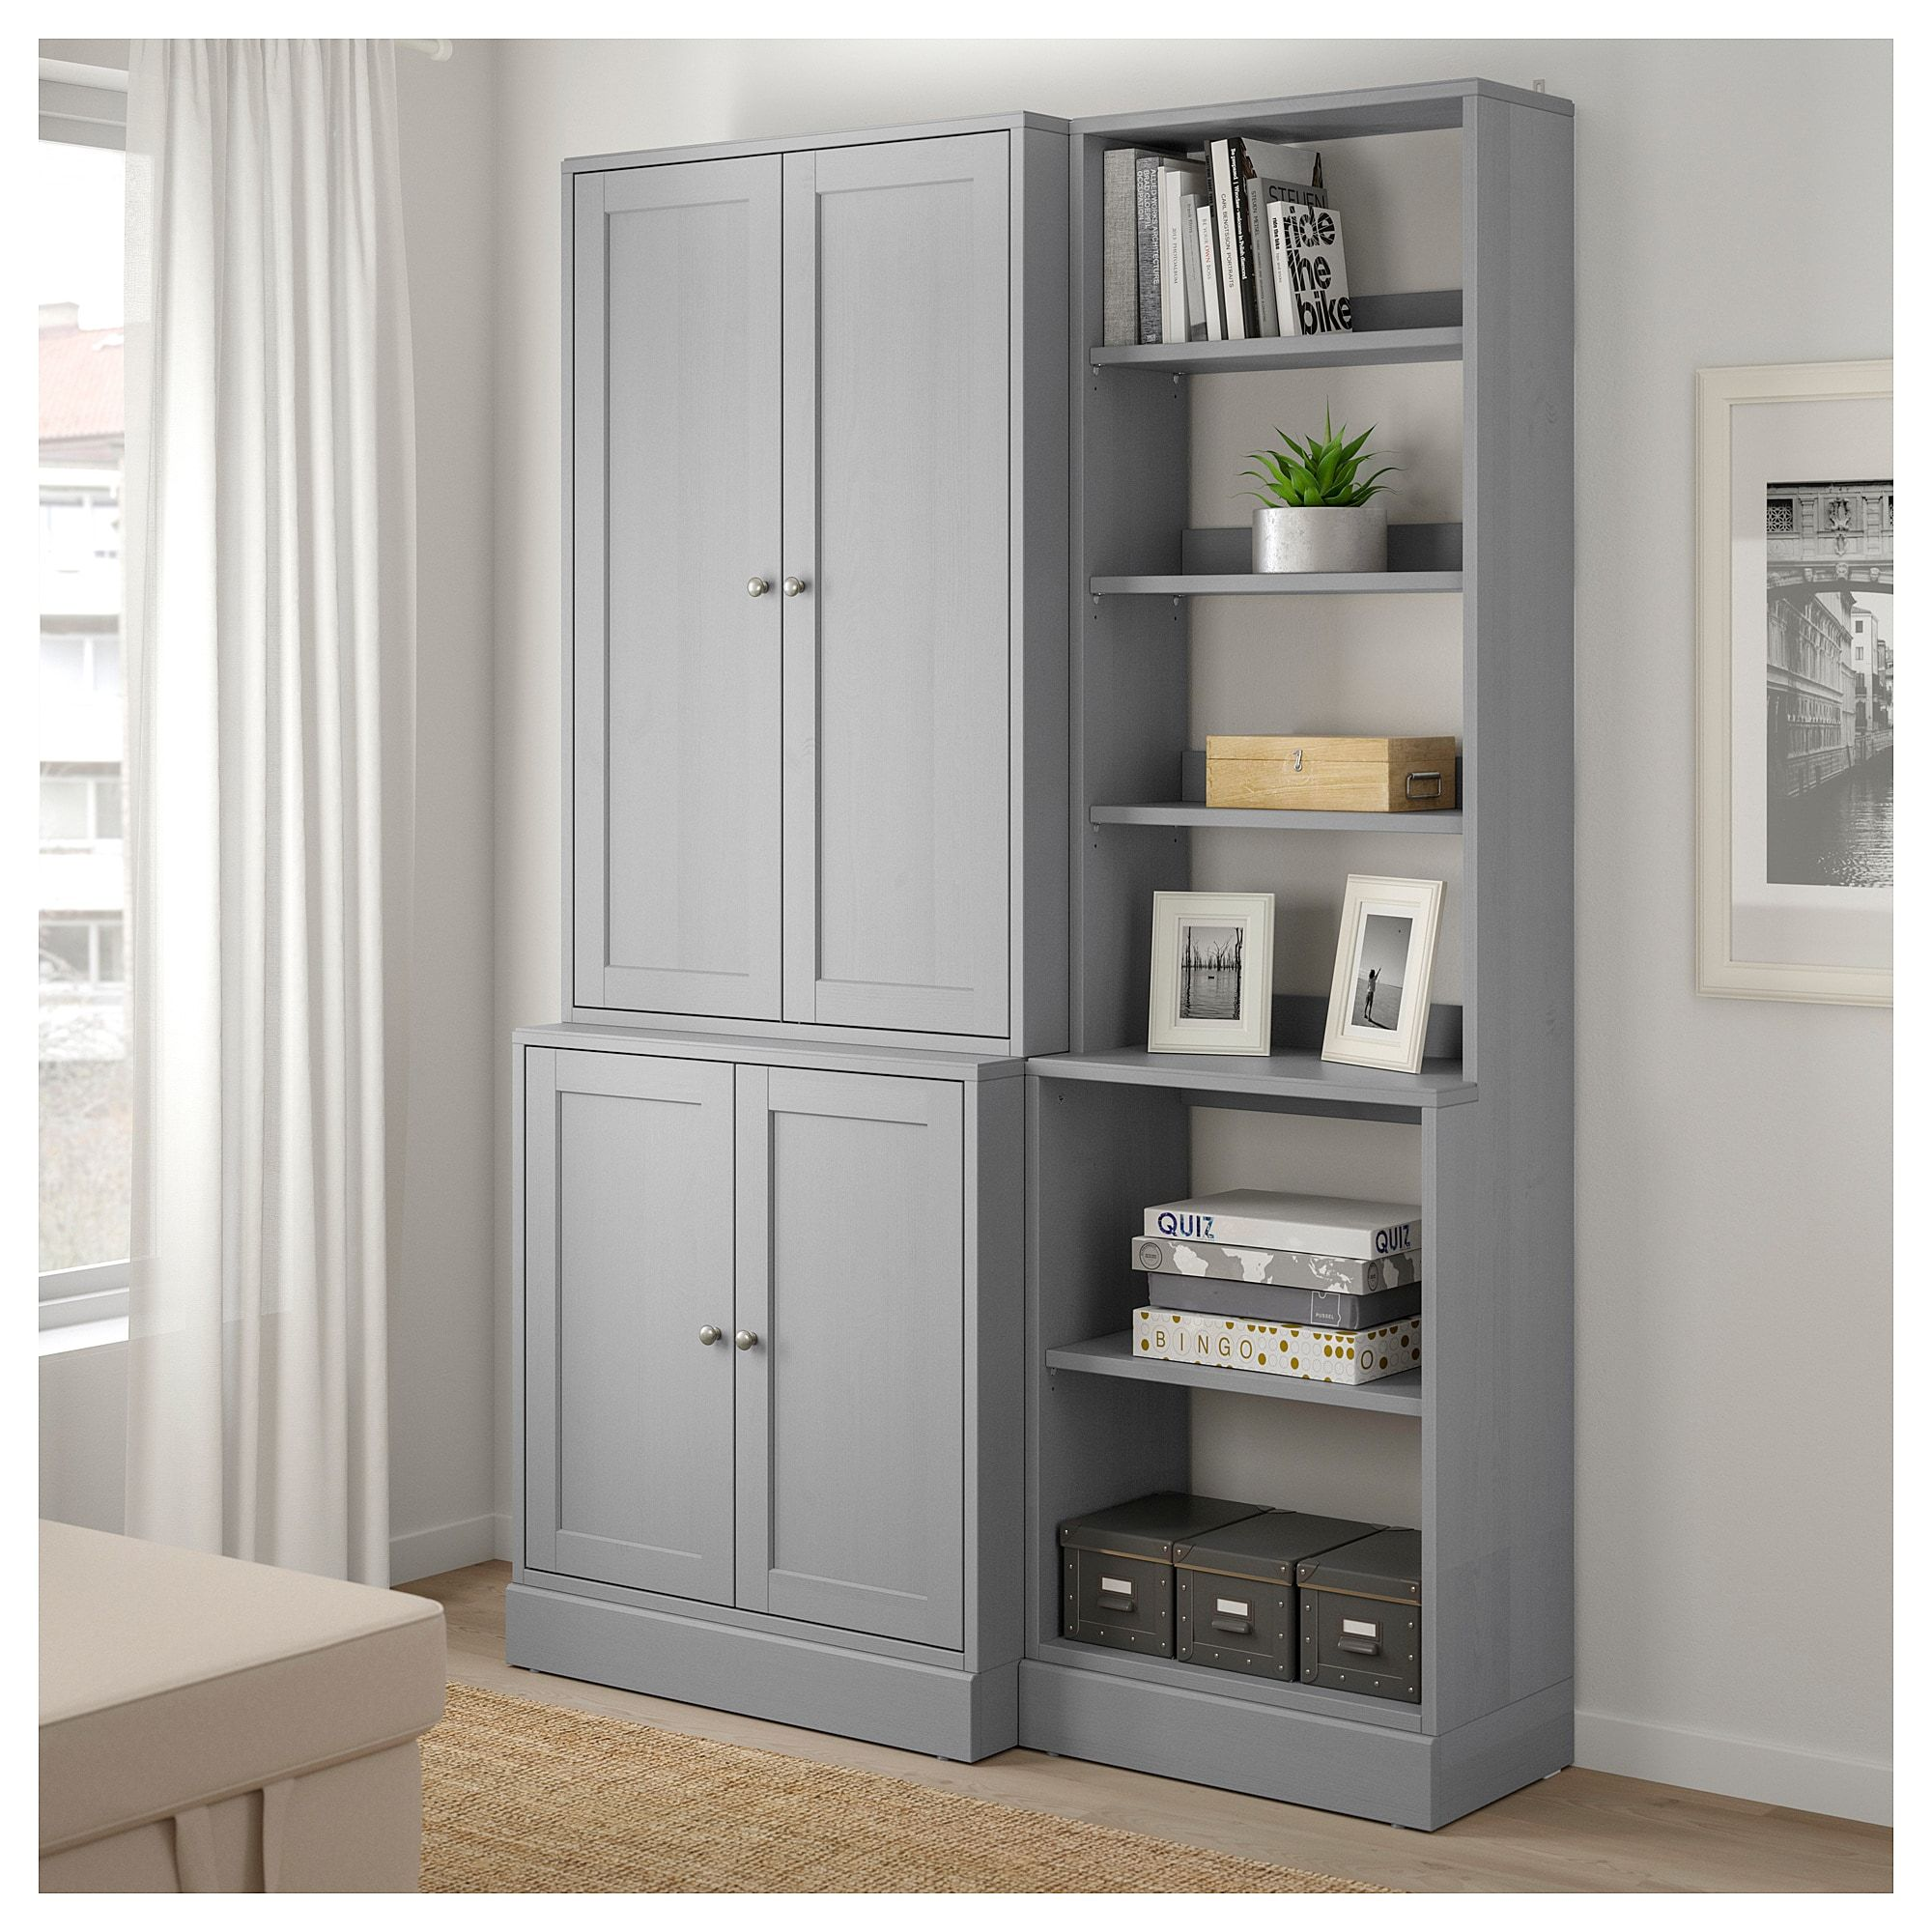 Ikea Storage Cabinets Ikea Havsta Storage Combination Gray In 2019 Home Ideas Tall